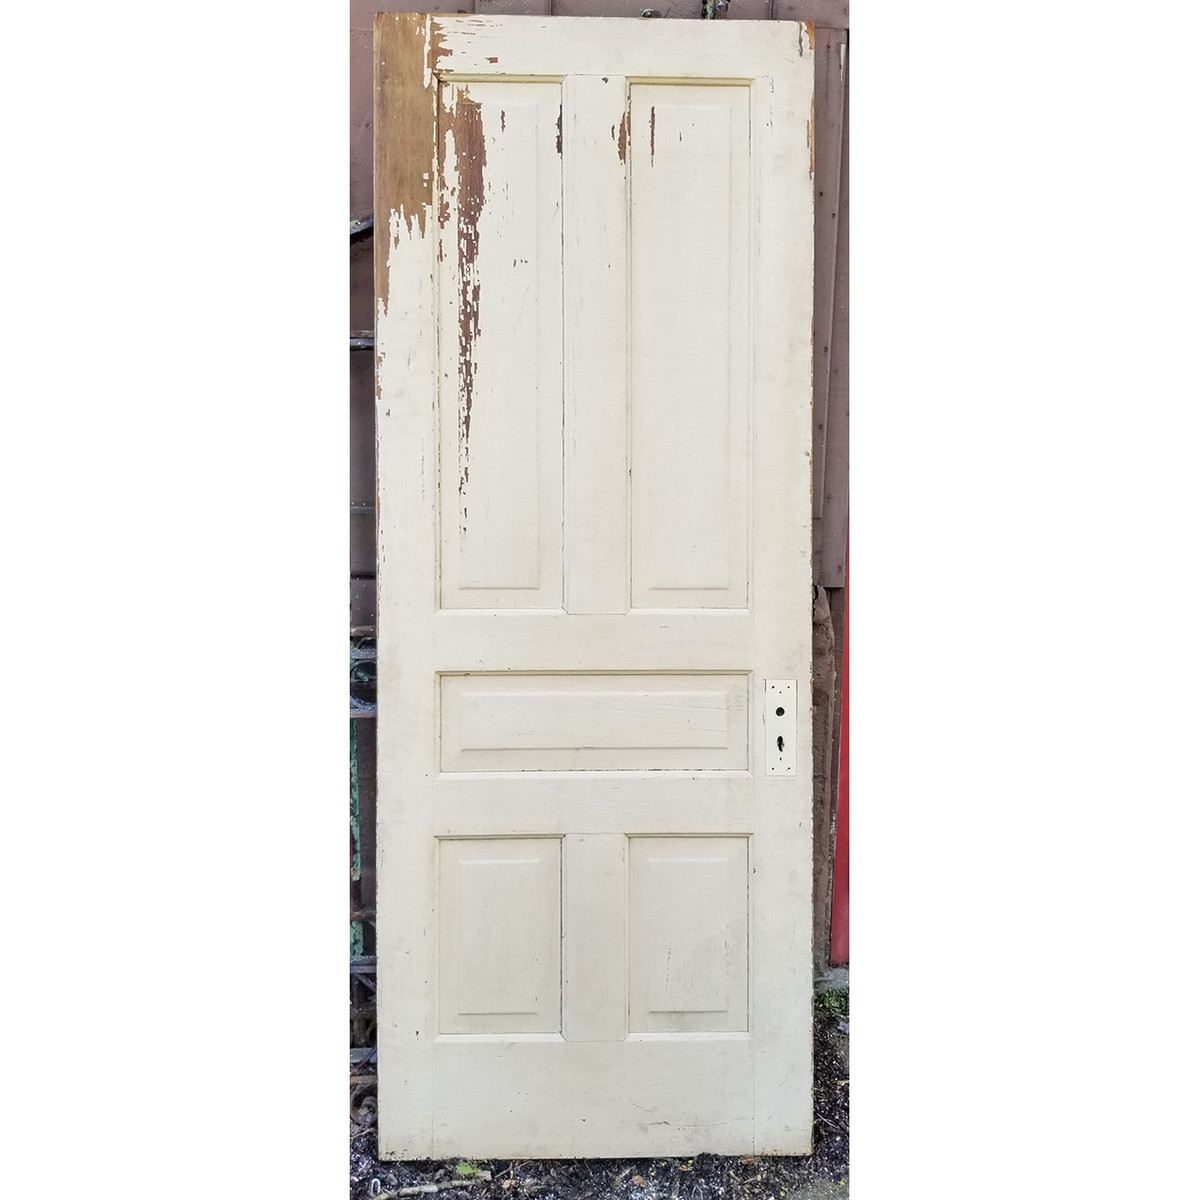 "D20024 - Antique Pine Five Panel Door 31-1/2"" x 83-3/4"""